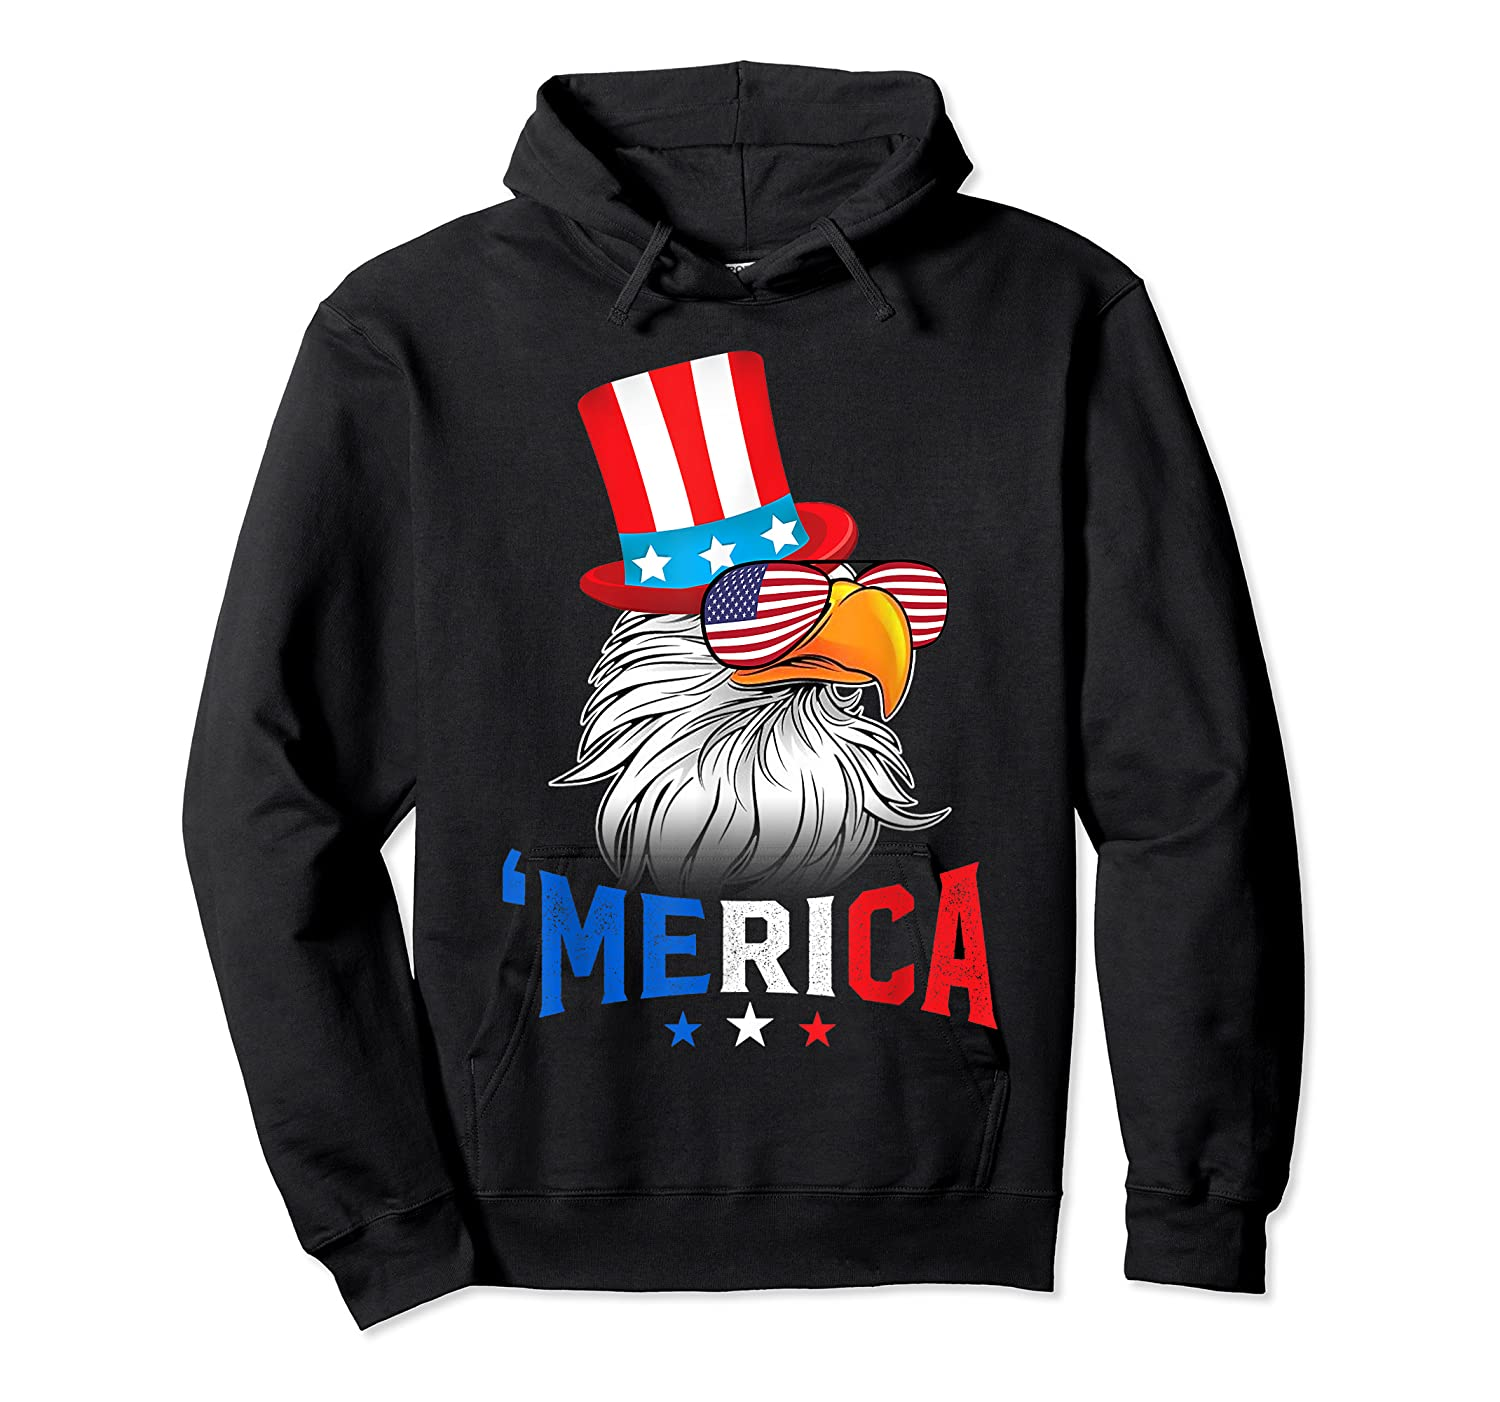 'merica Bald Eagle Sunglasses Flag Uncle Sam 4th Of July Shirts Unisex Pullover Hoodie